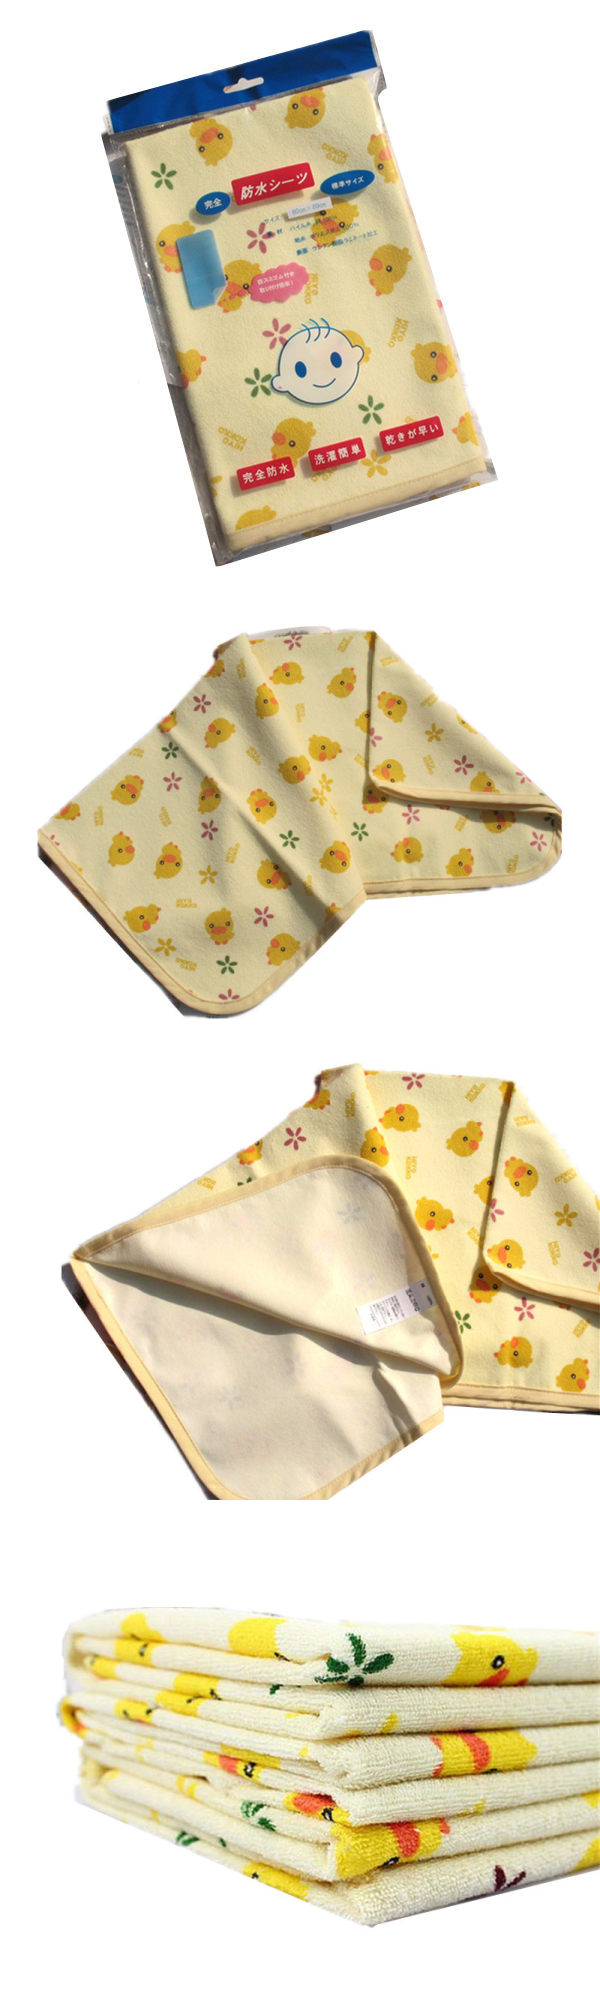 Little B House 60cm x 70cm Baby Yellow Duckling Waterproof Washable Diaper Changing Mat Pad  -BKM09 (M)